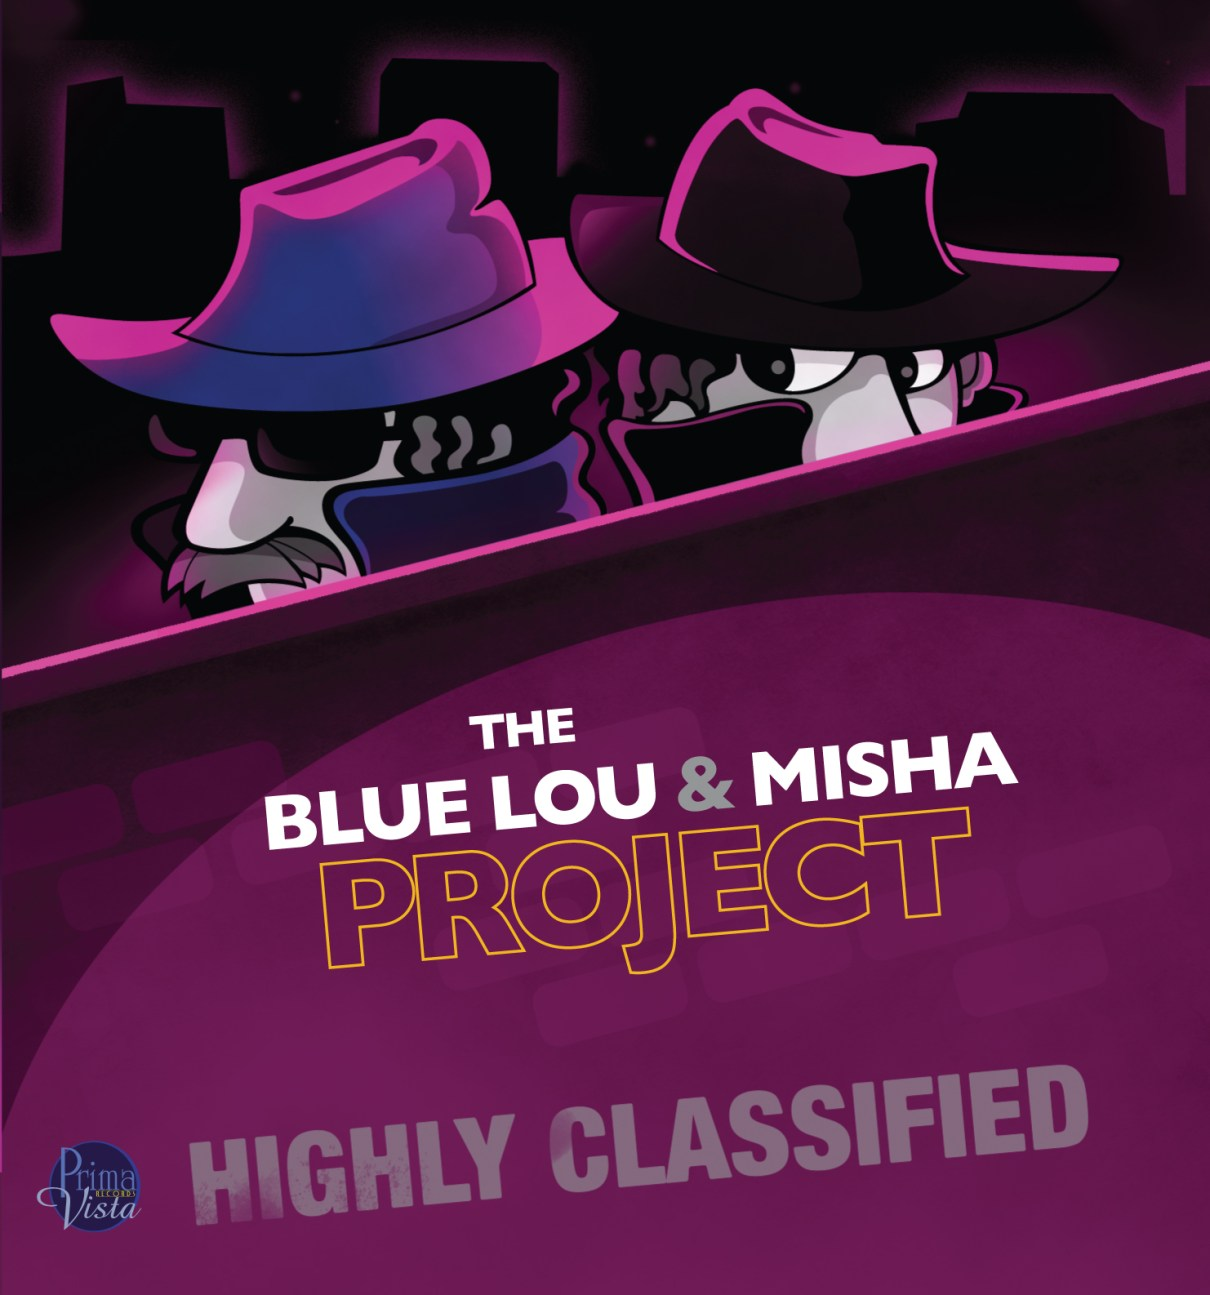 The Blue Lou and Misha Project CD illustration and design